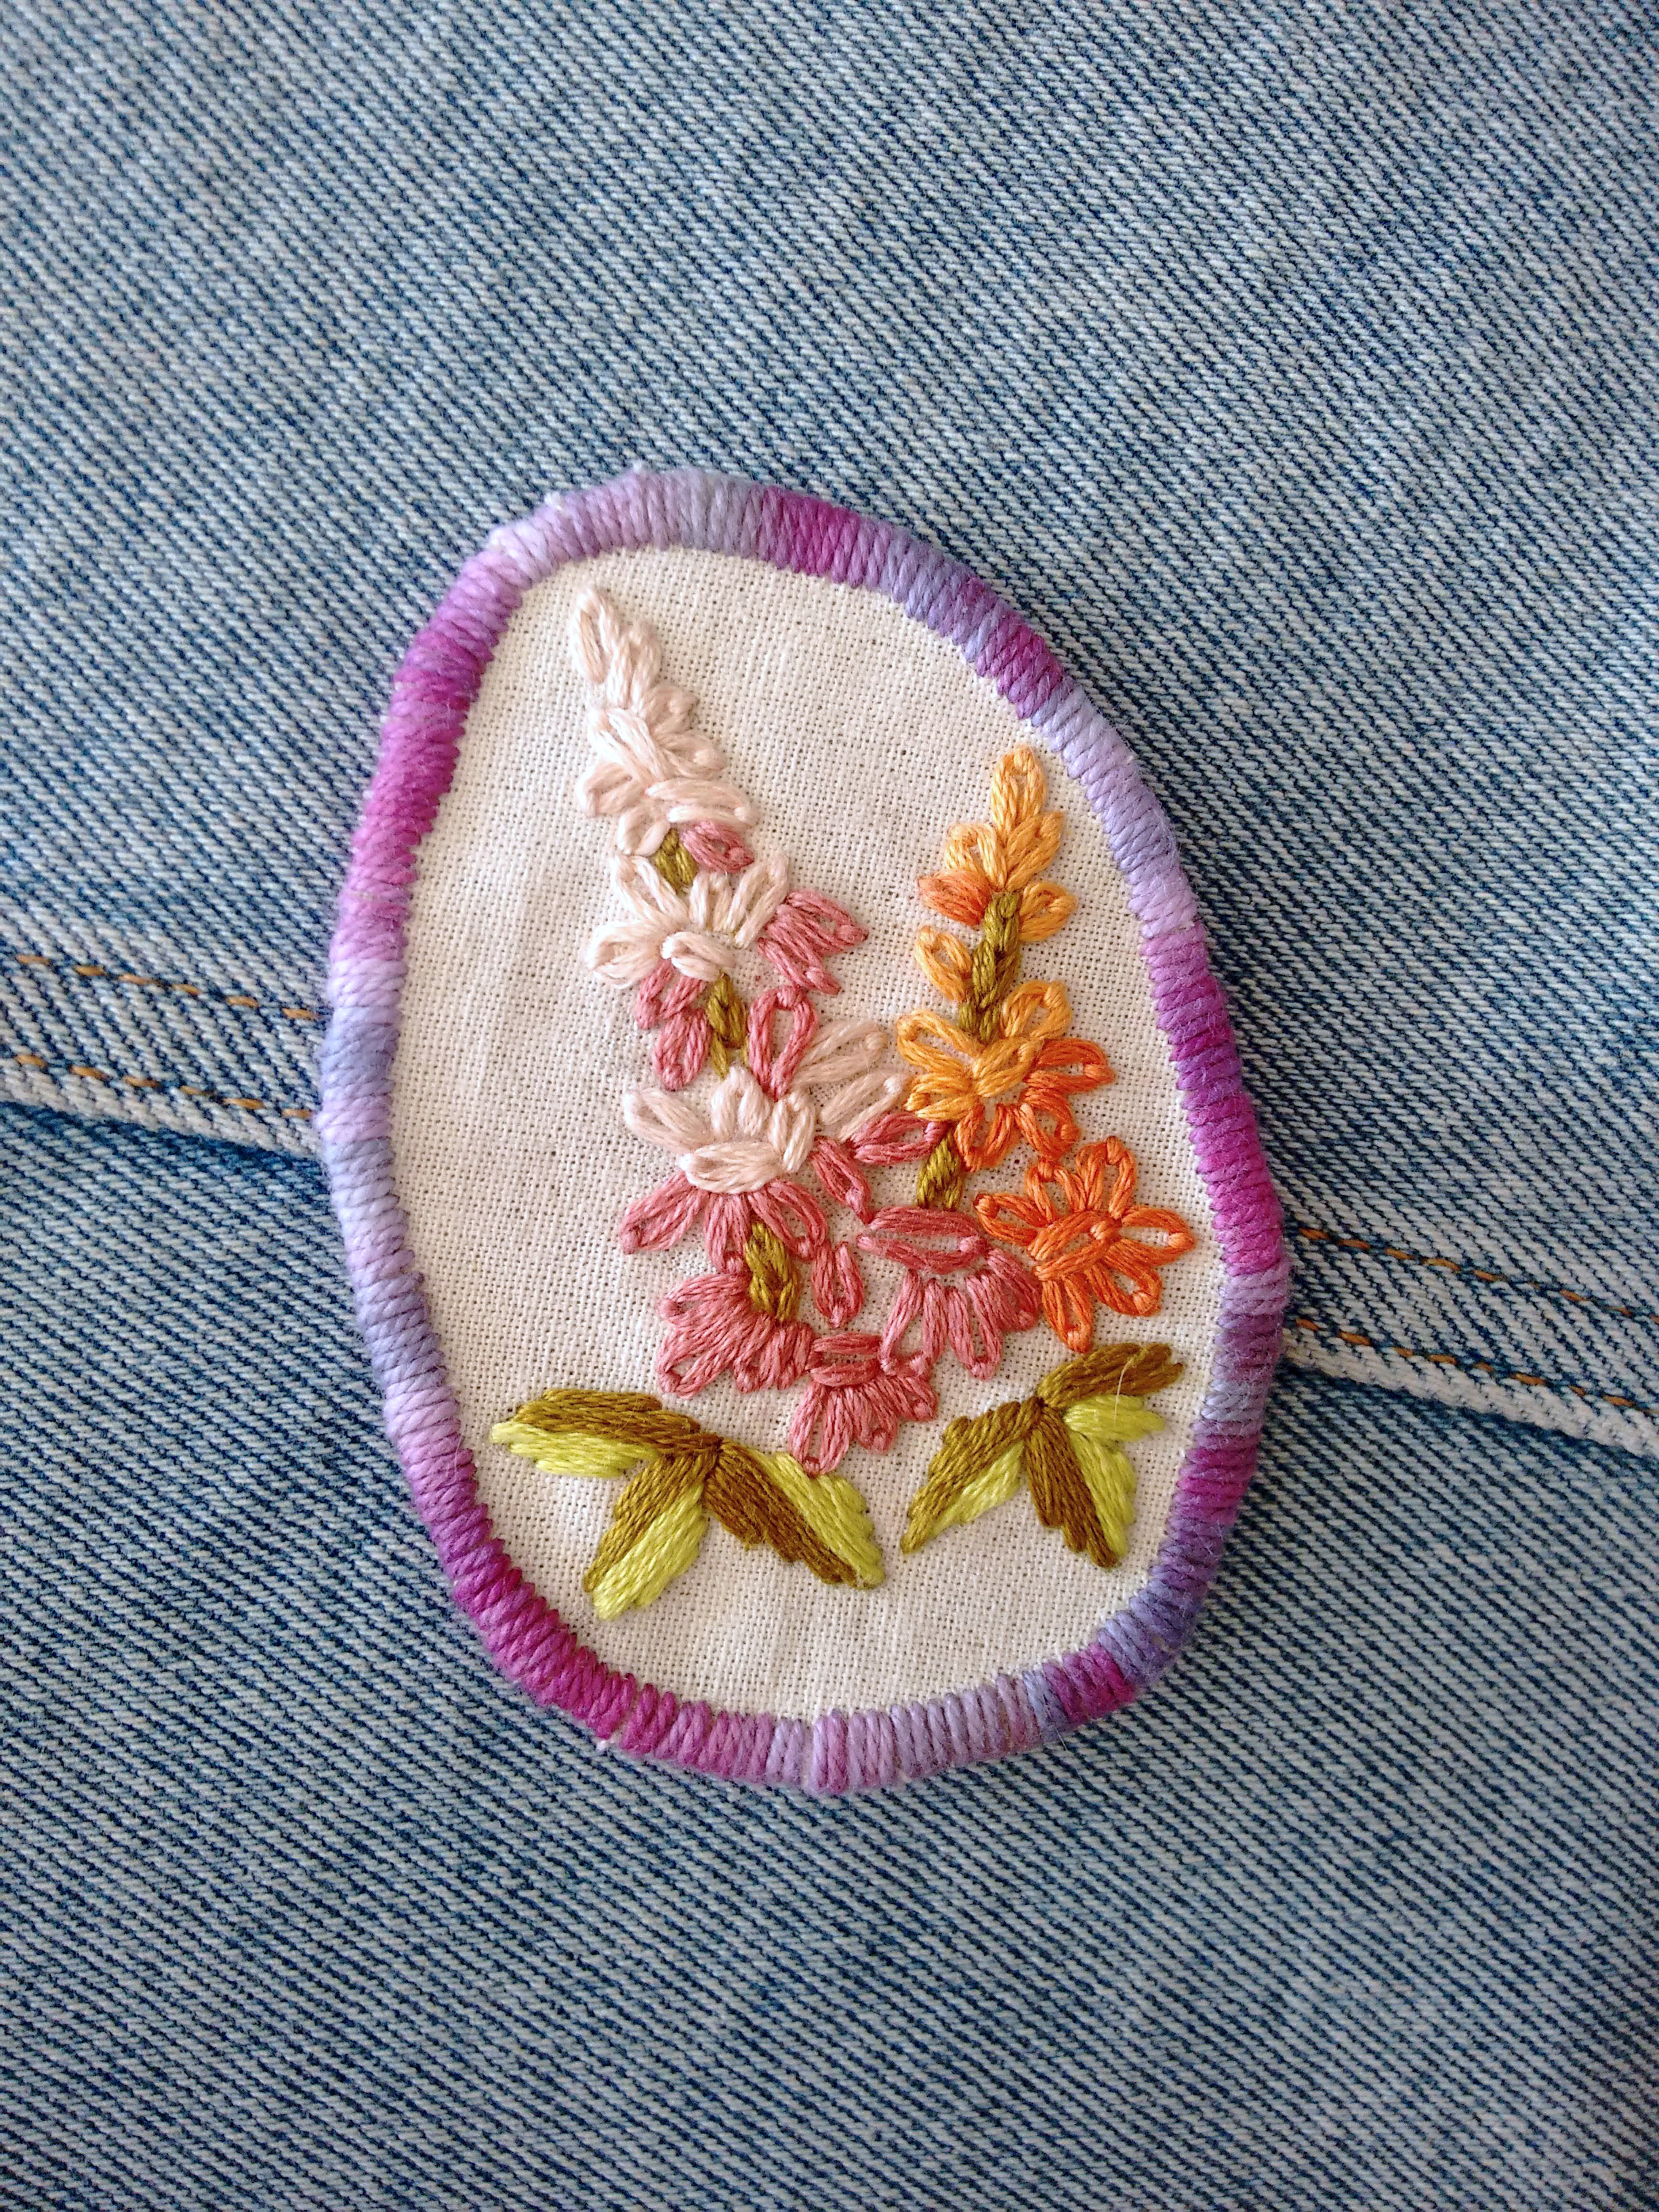 Embroidered snapdragon patch with a purple trim